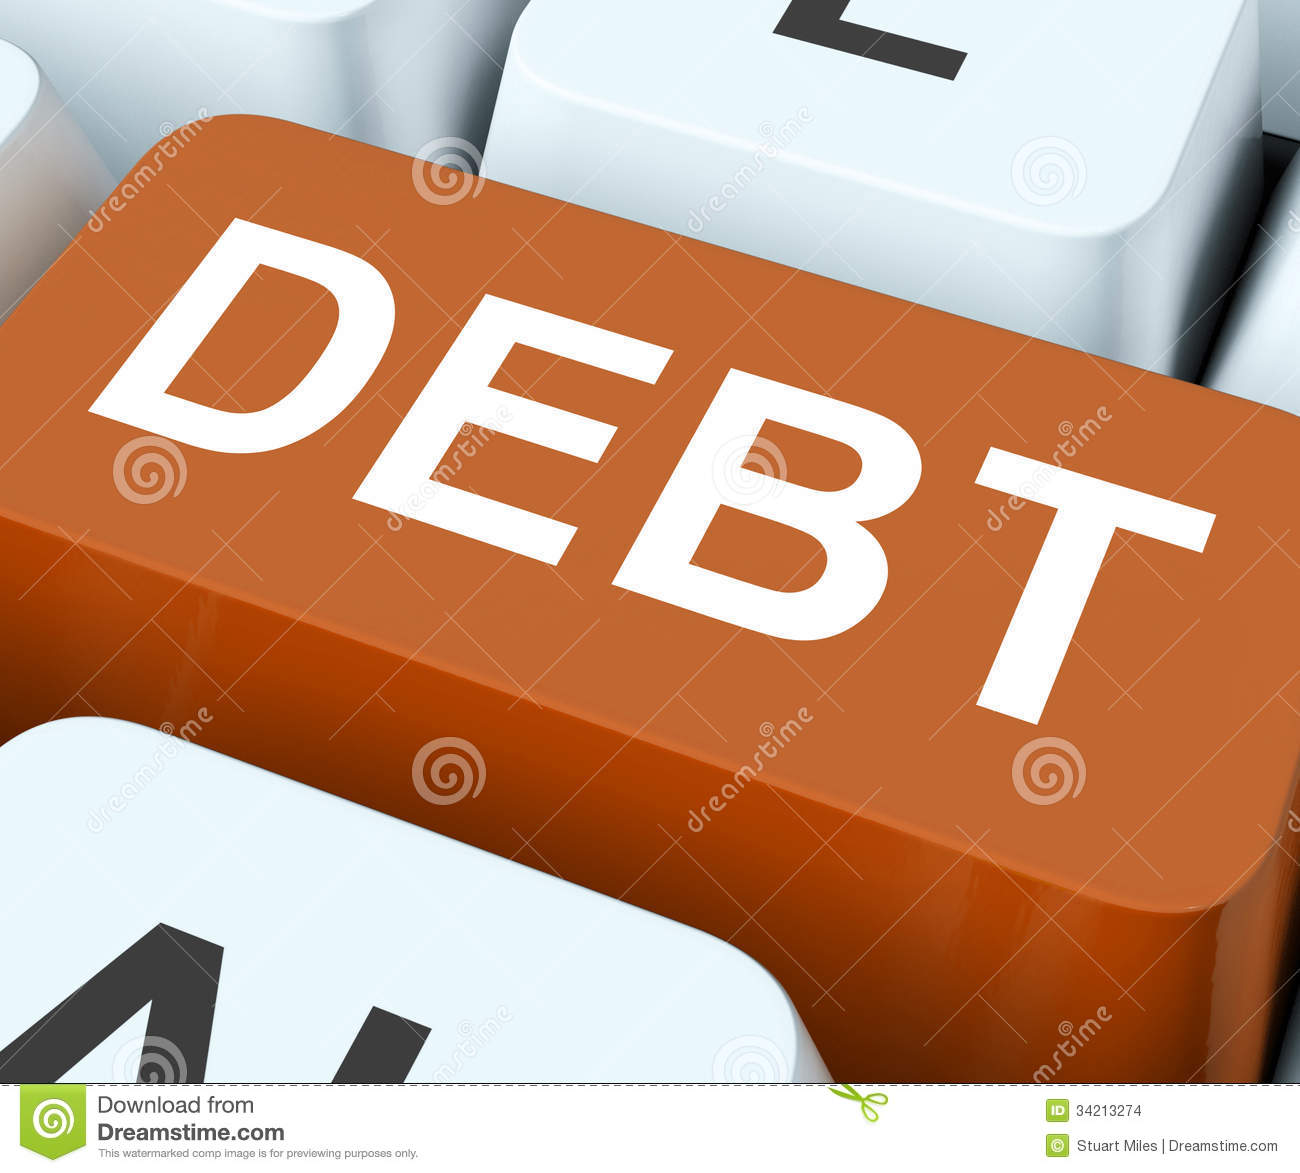 Debt Key Show Indebtedness Or Liabilities Stock Images - Image ...